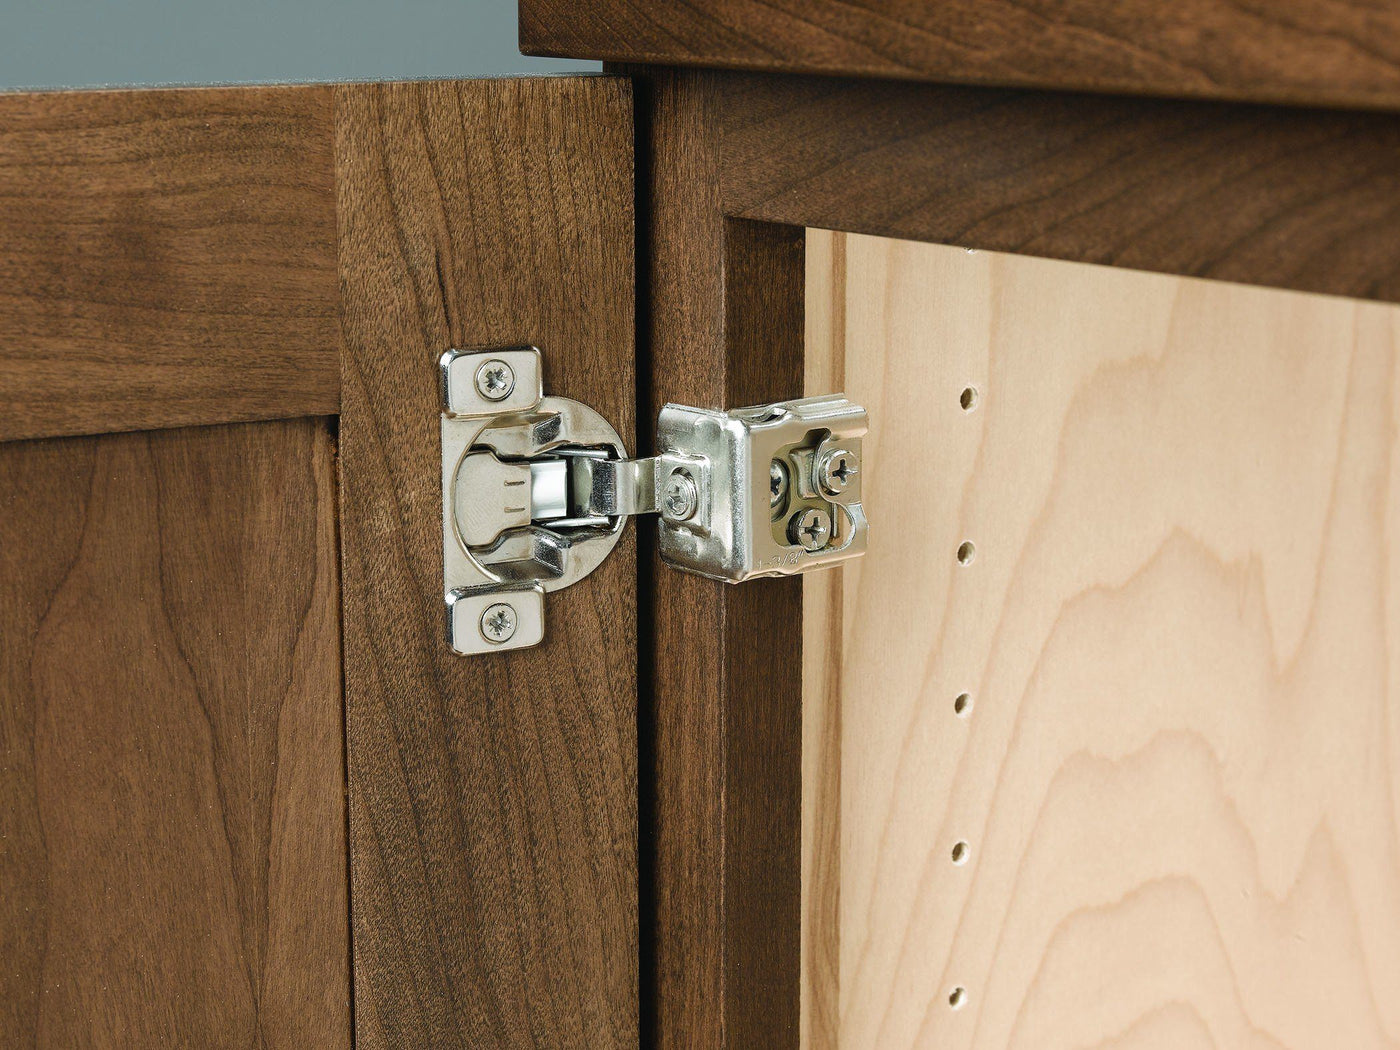 Concealed European Cabinet Hinges - Simple and Stylish